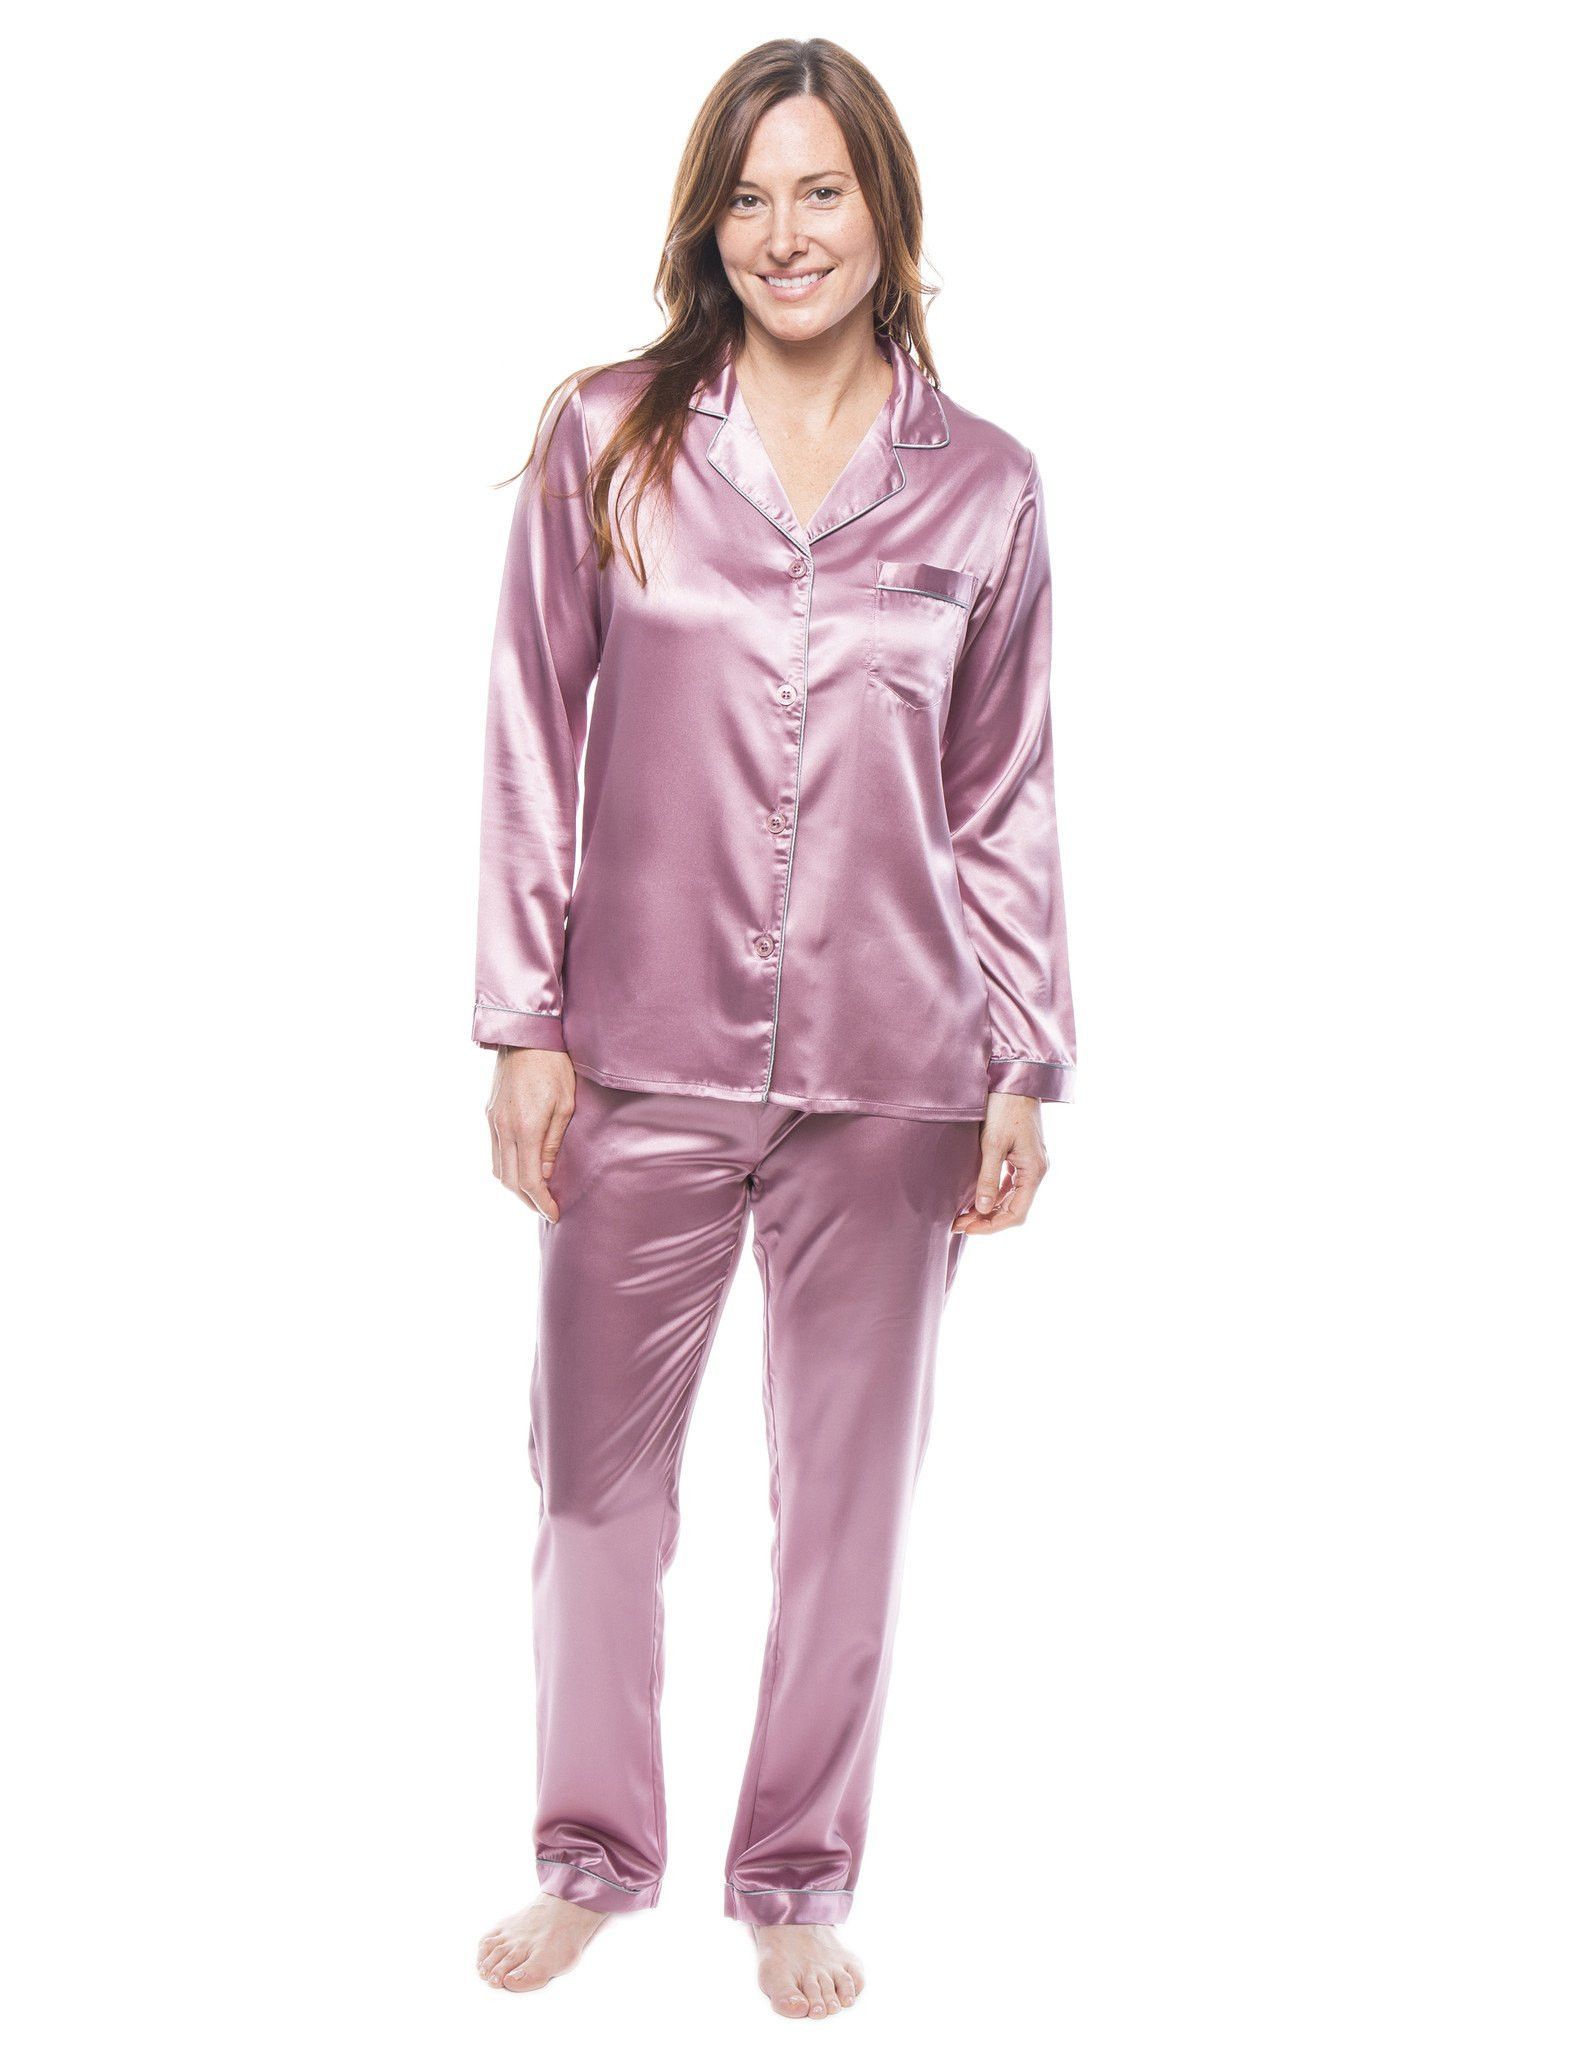 ea5d2cda434e94 Women's Satin Pajama/Sleepwear Set | Pyjama & Night Dress | Satin ...